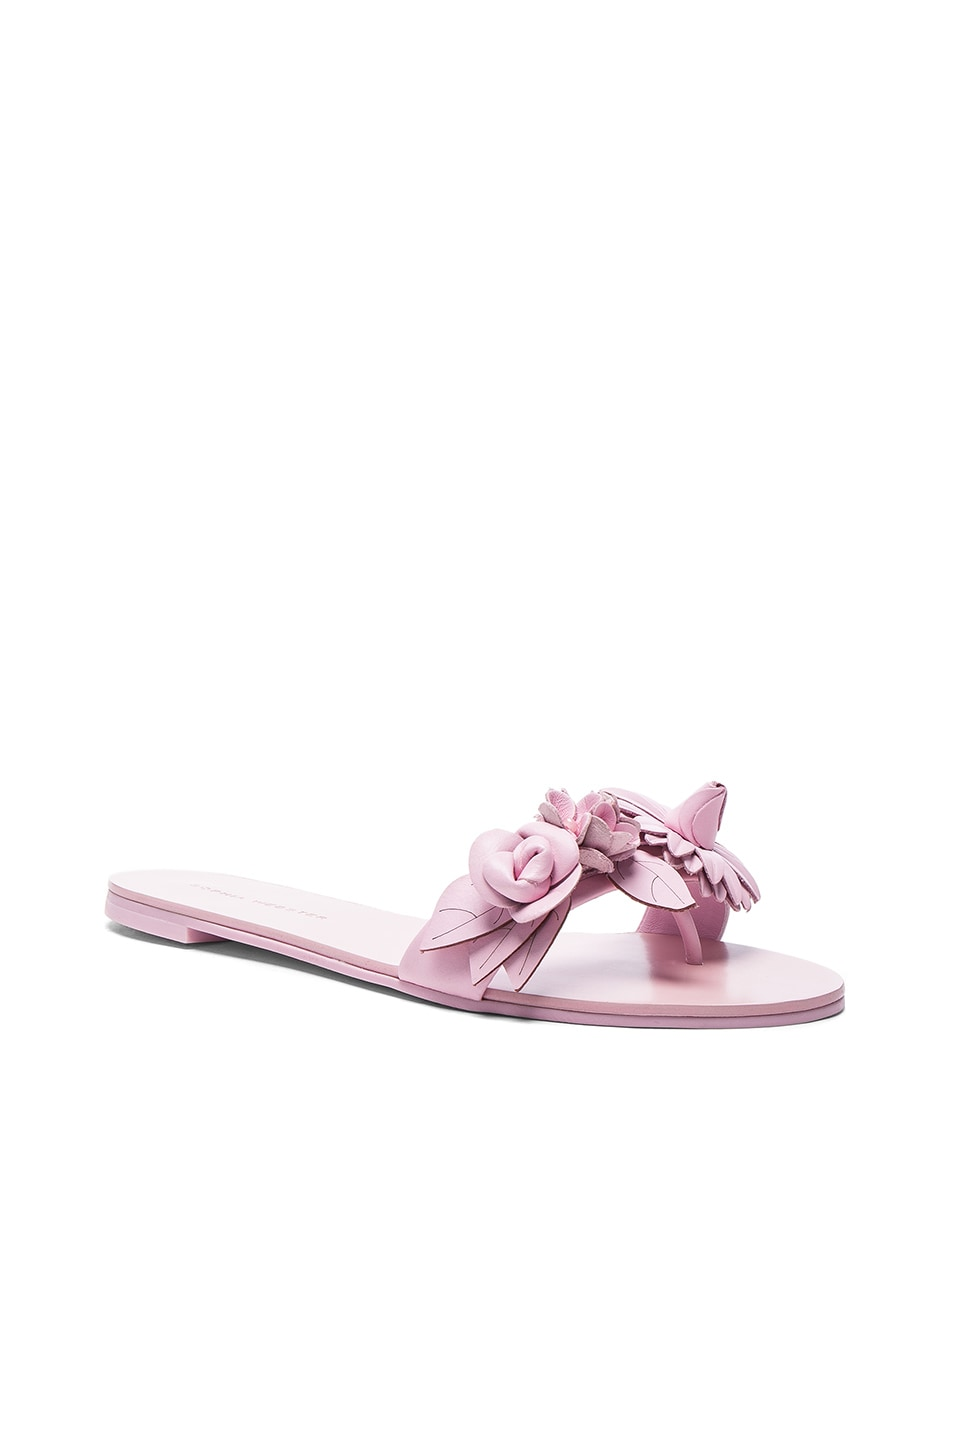 Image 2 of Sophia Webster Leather Lilico Sandals in Pink